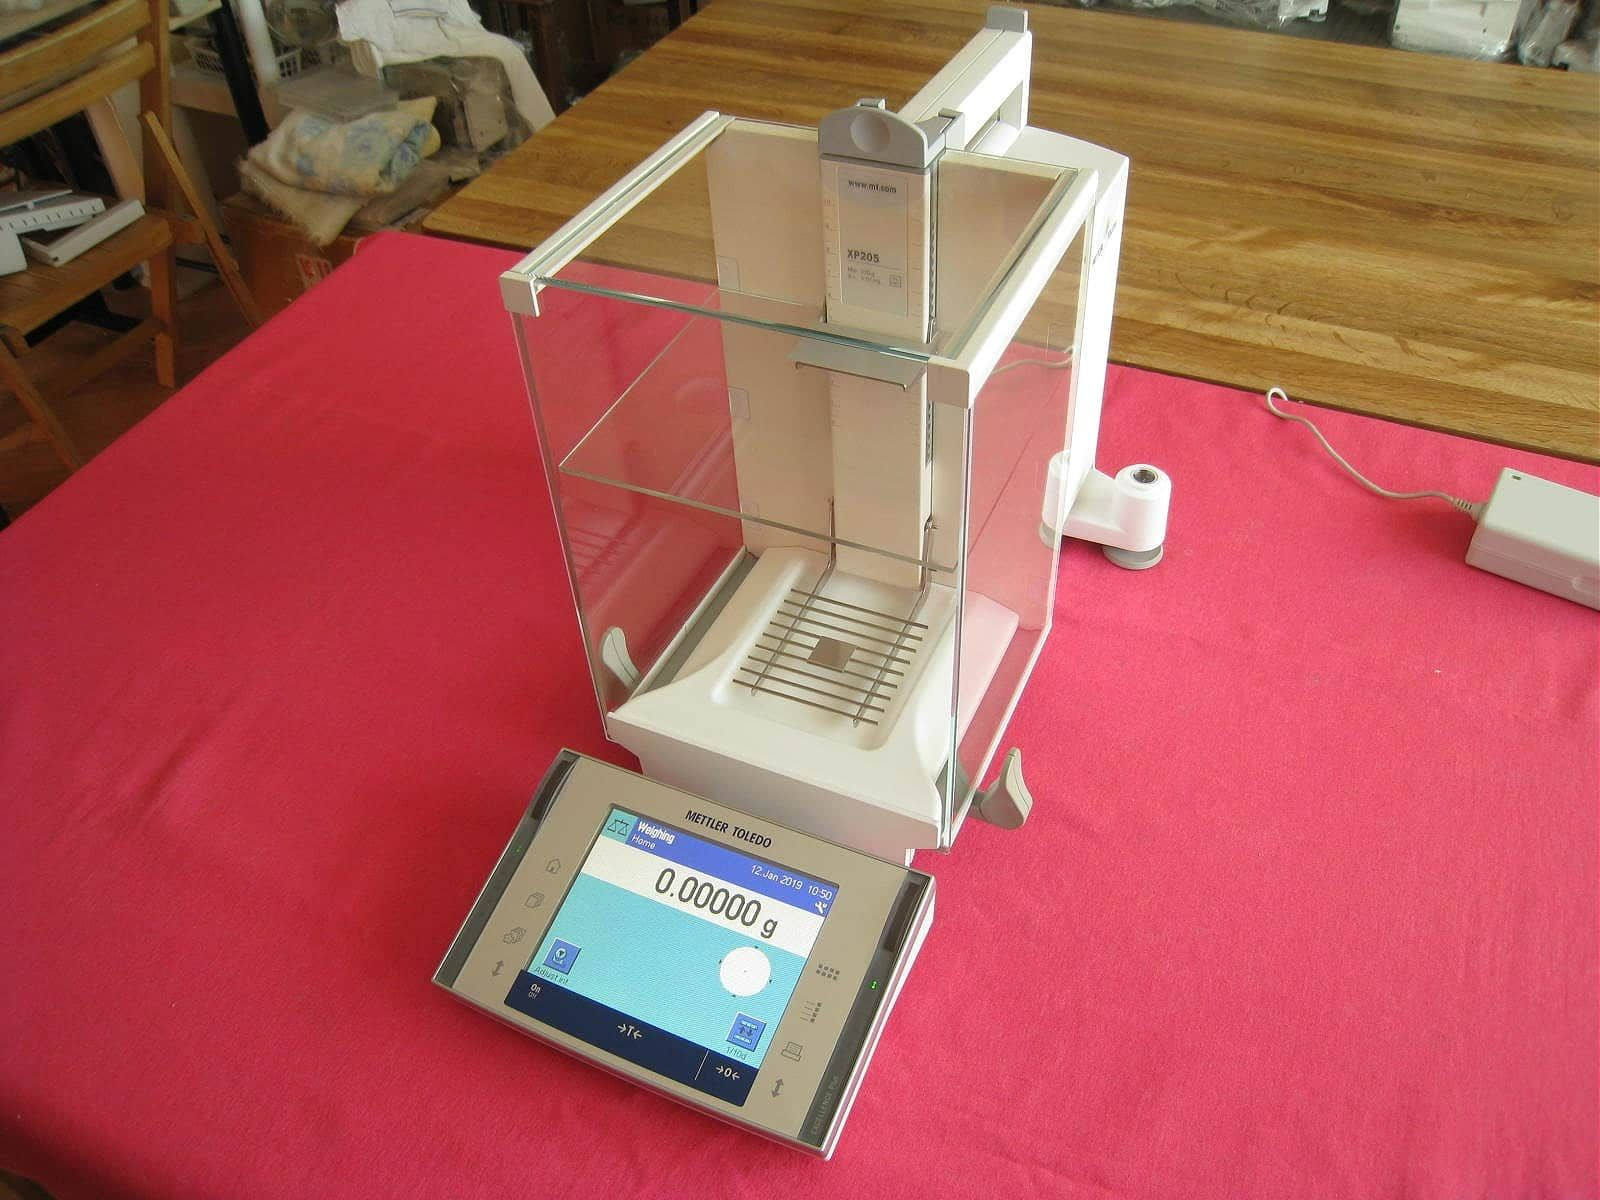 Mettler Toledo XP205 Analytical Balance Scale 81.00000g / 220.0000g